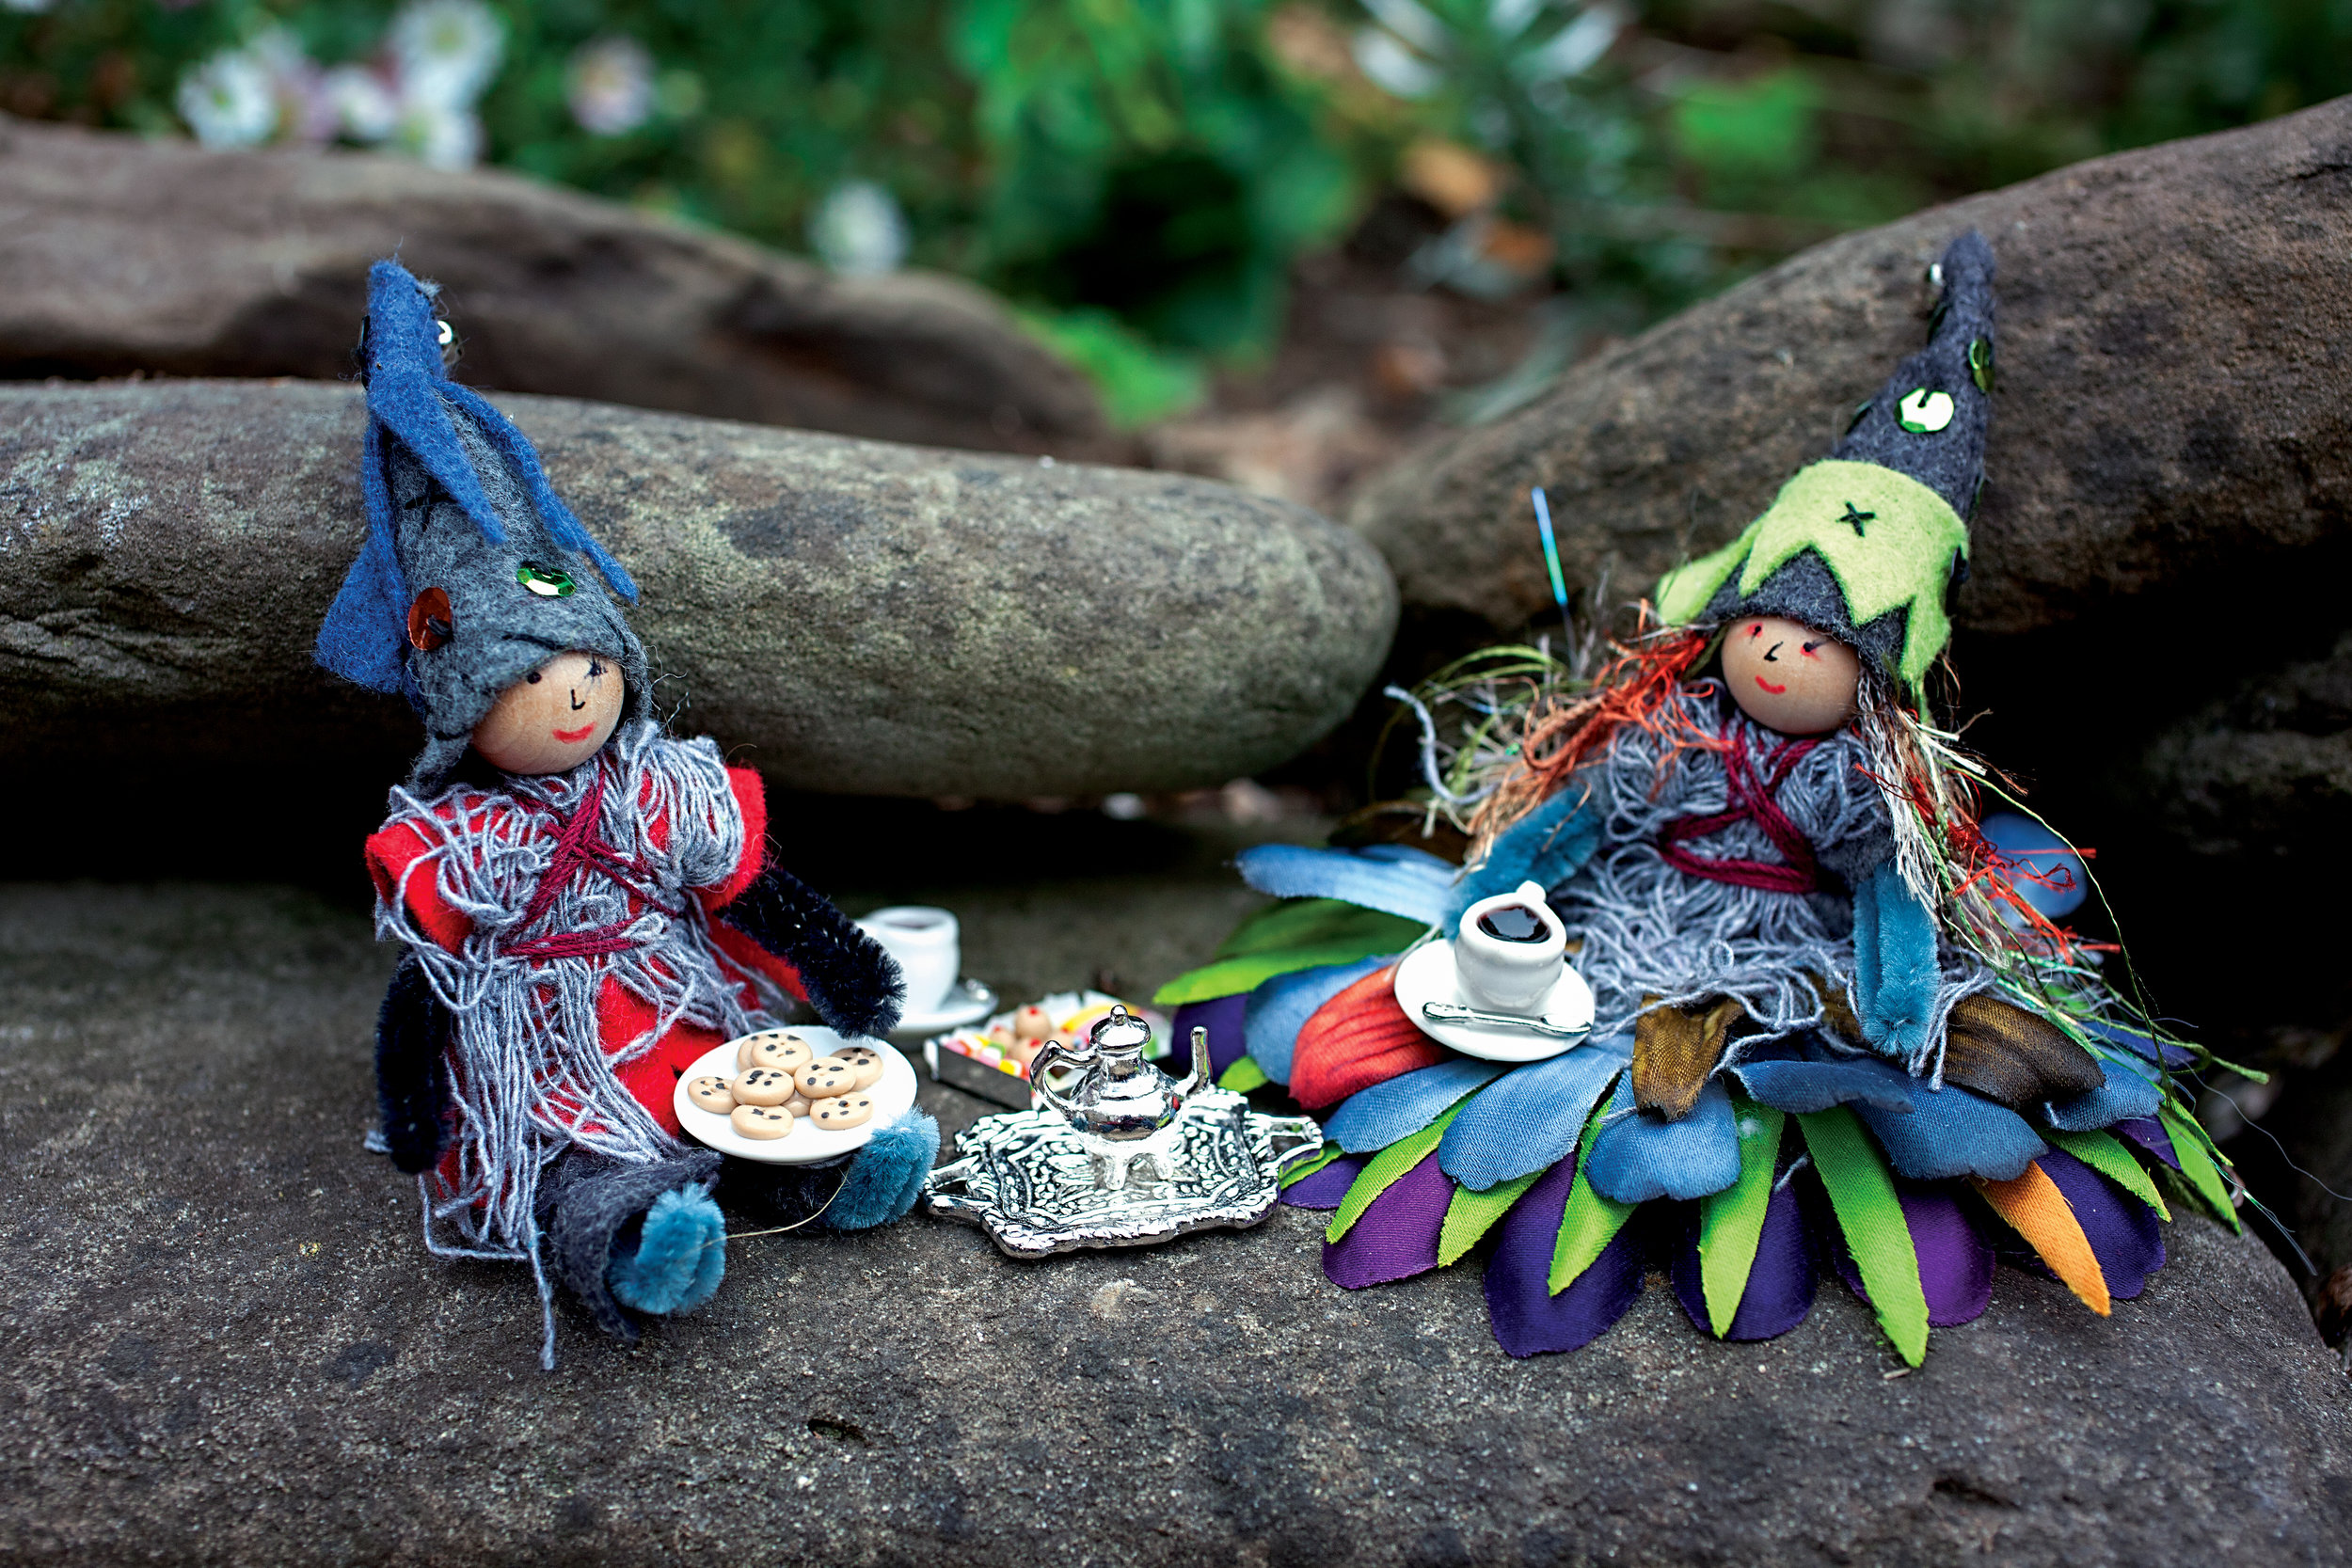 Autumn crafts in the Forest Fairy Crafts books by Lenka Vodicka-Paredes and Asia Curry. Handwork and enchanted ideas for children of all ages. Zombie bendy dolls and fairies